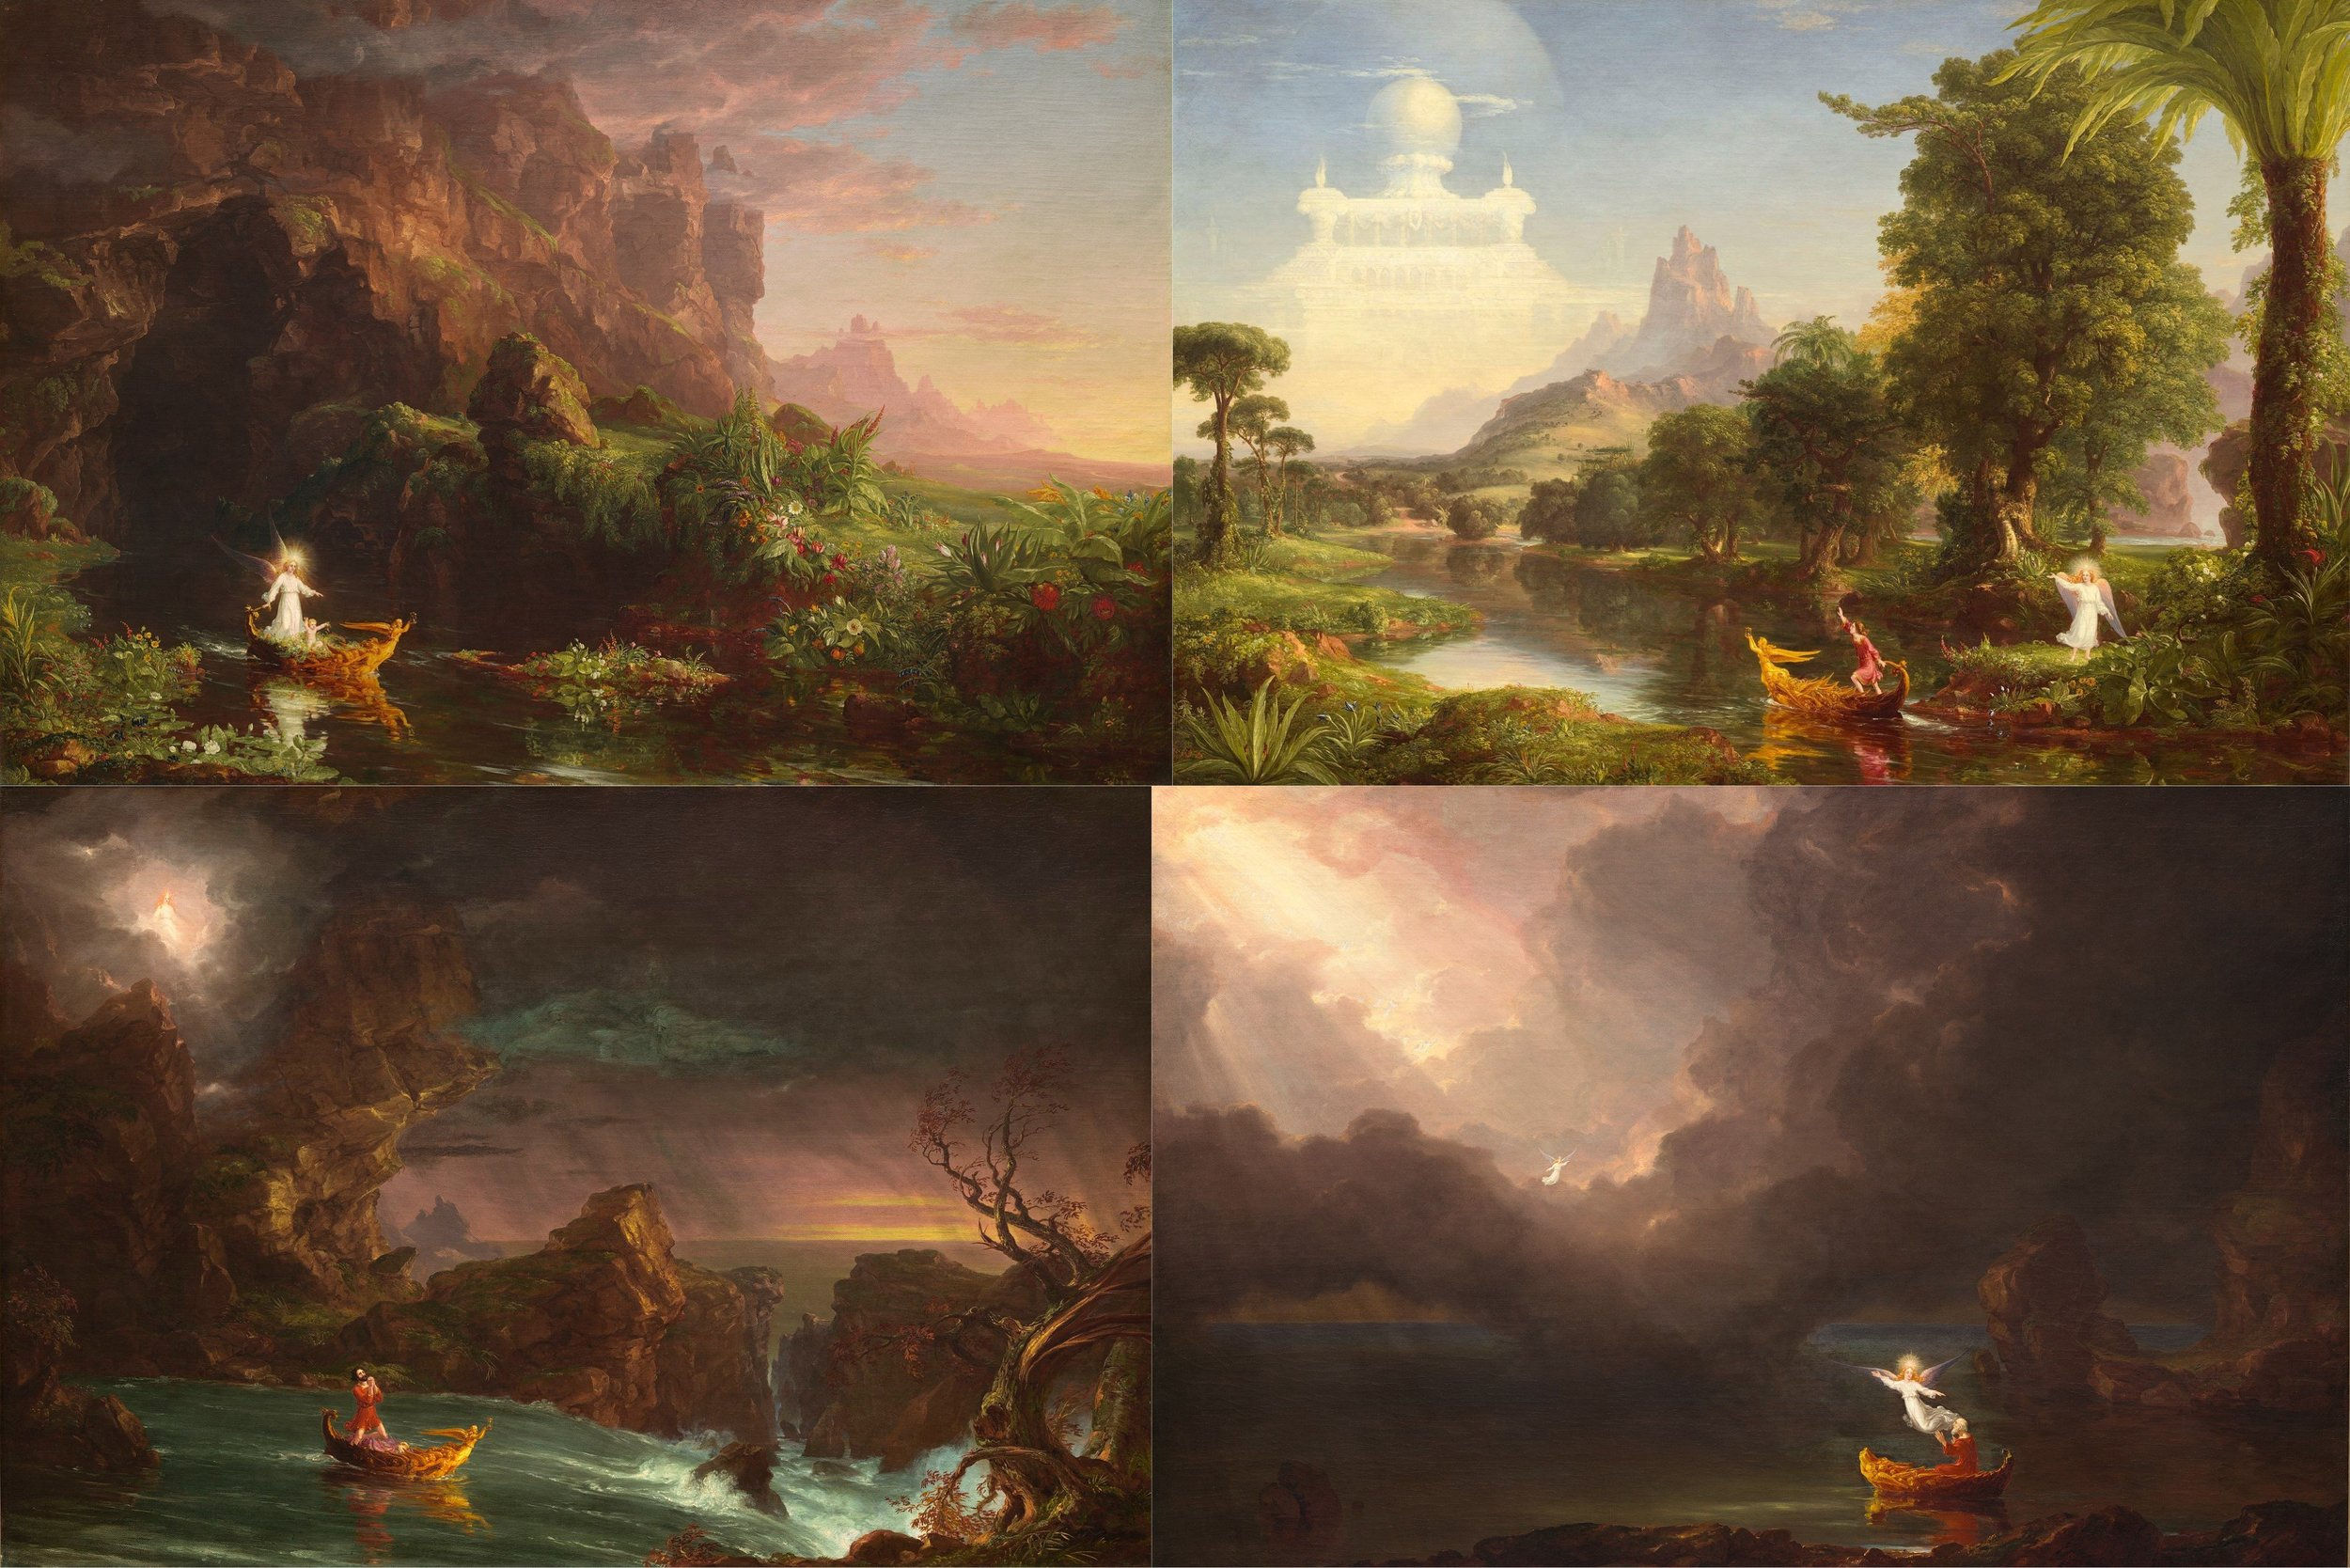 The Voyage of Life series by Thomas Cole, 1842